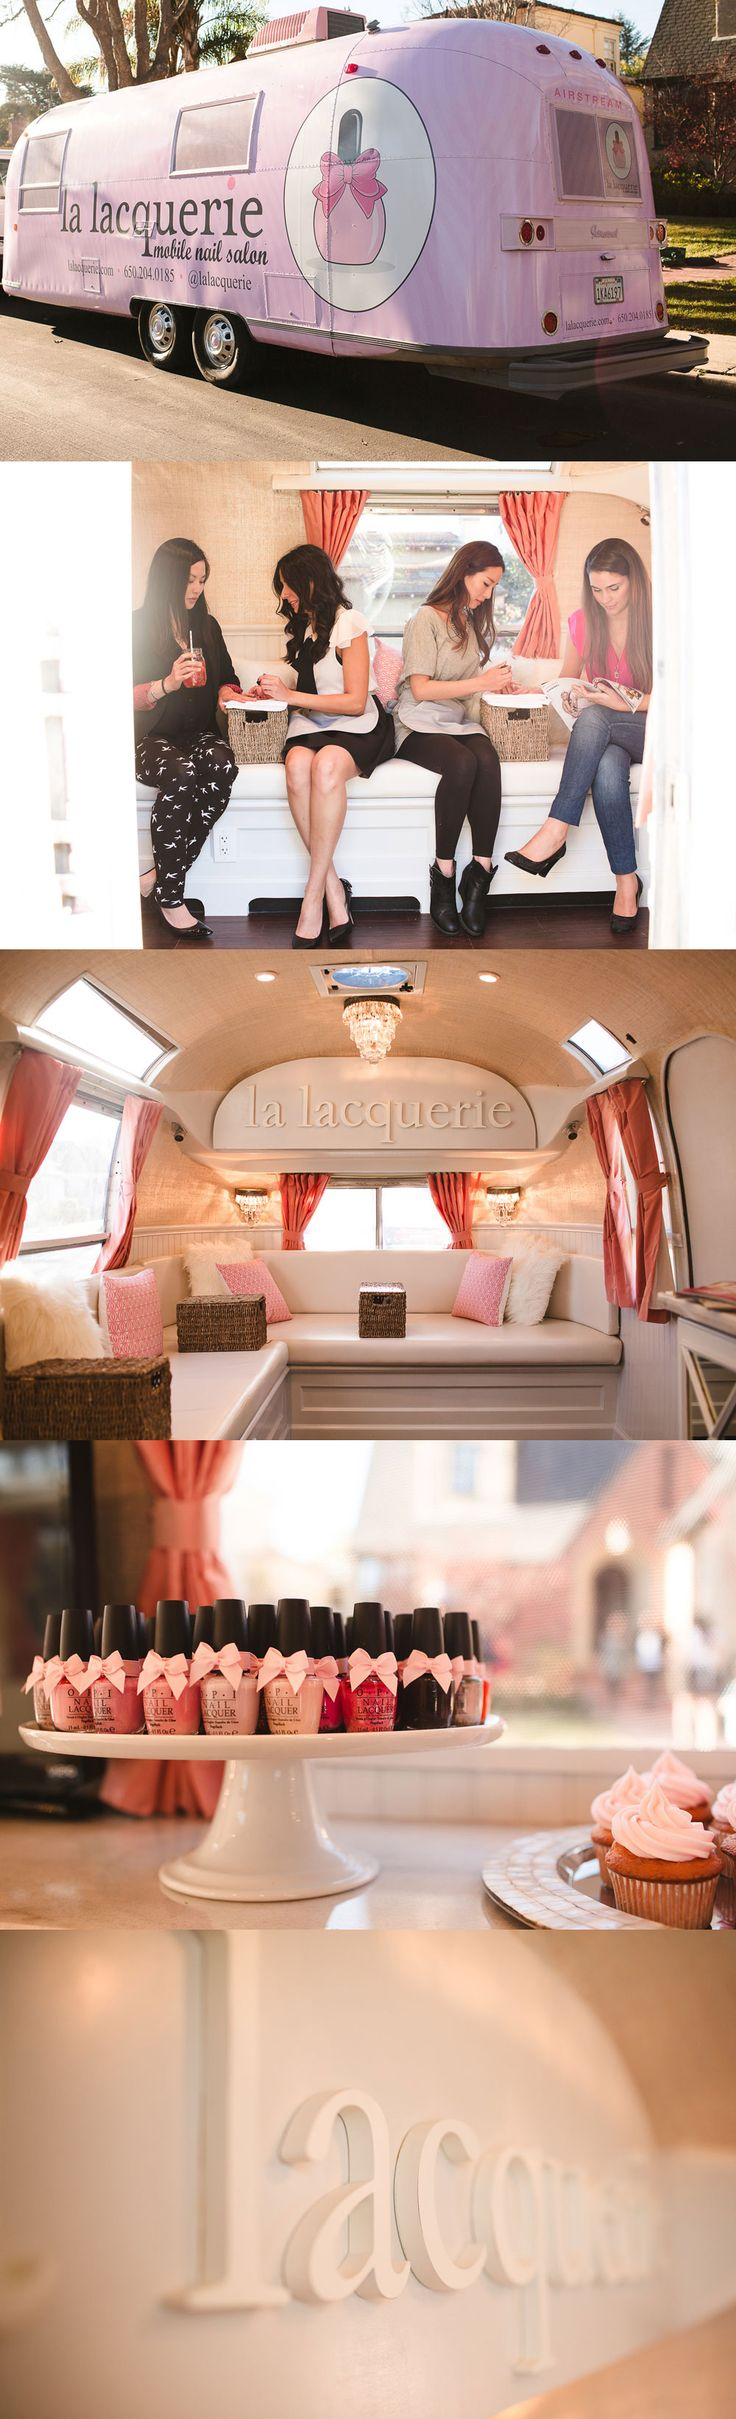 25 best ideas about mobile fashion truck on pinterest for 24 hour nail salon philadelphia